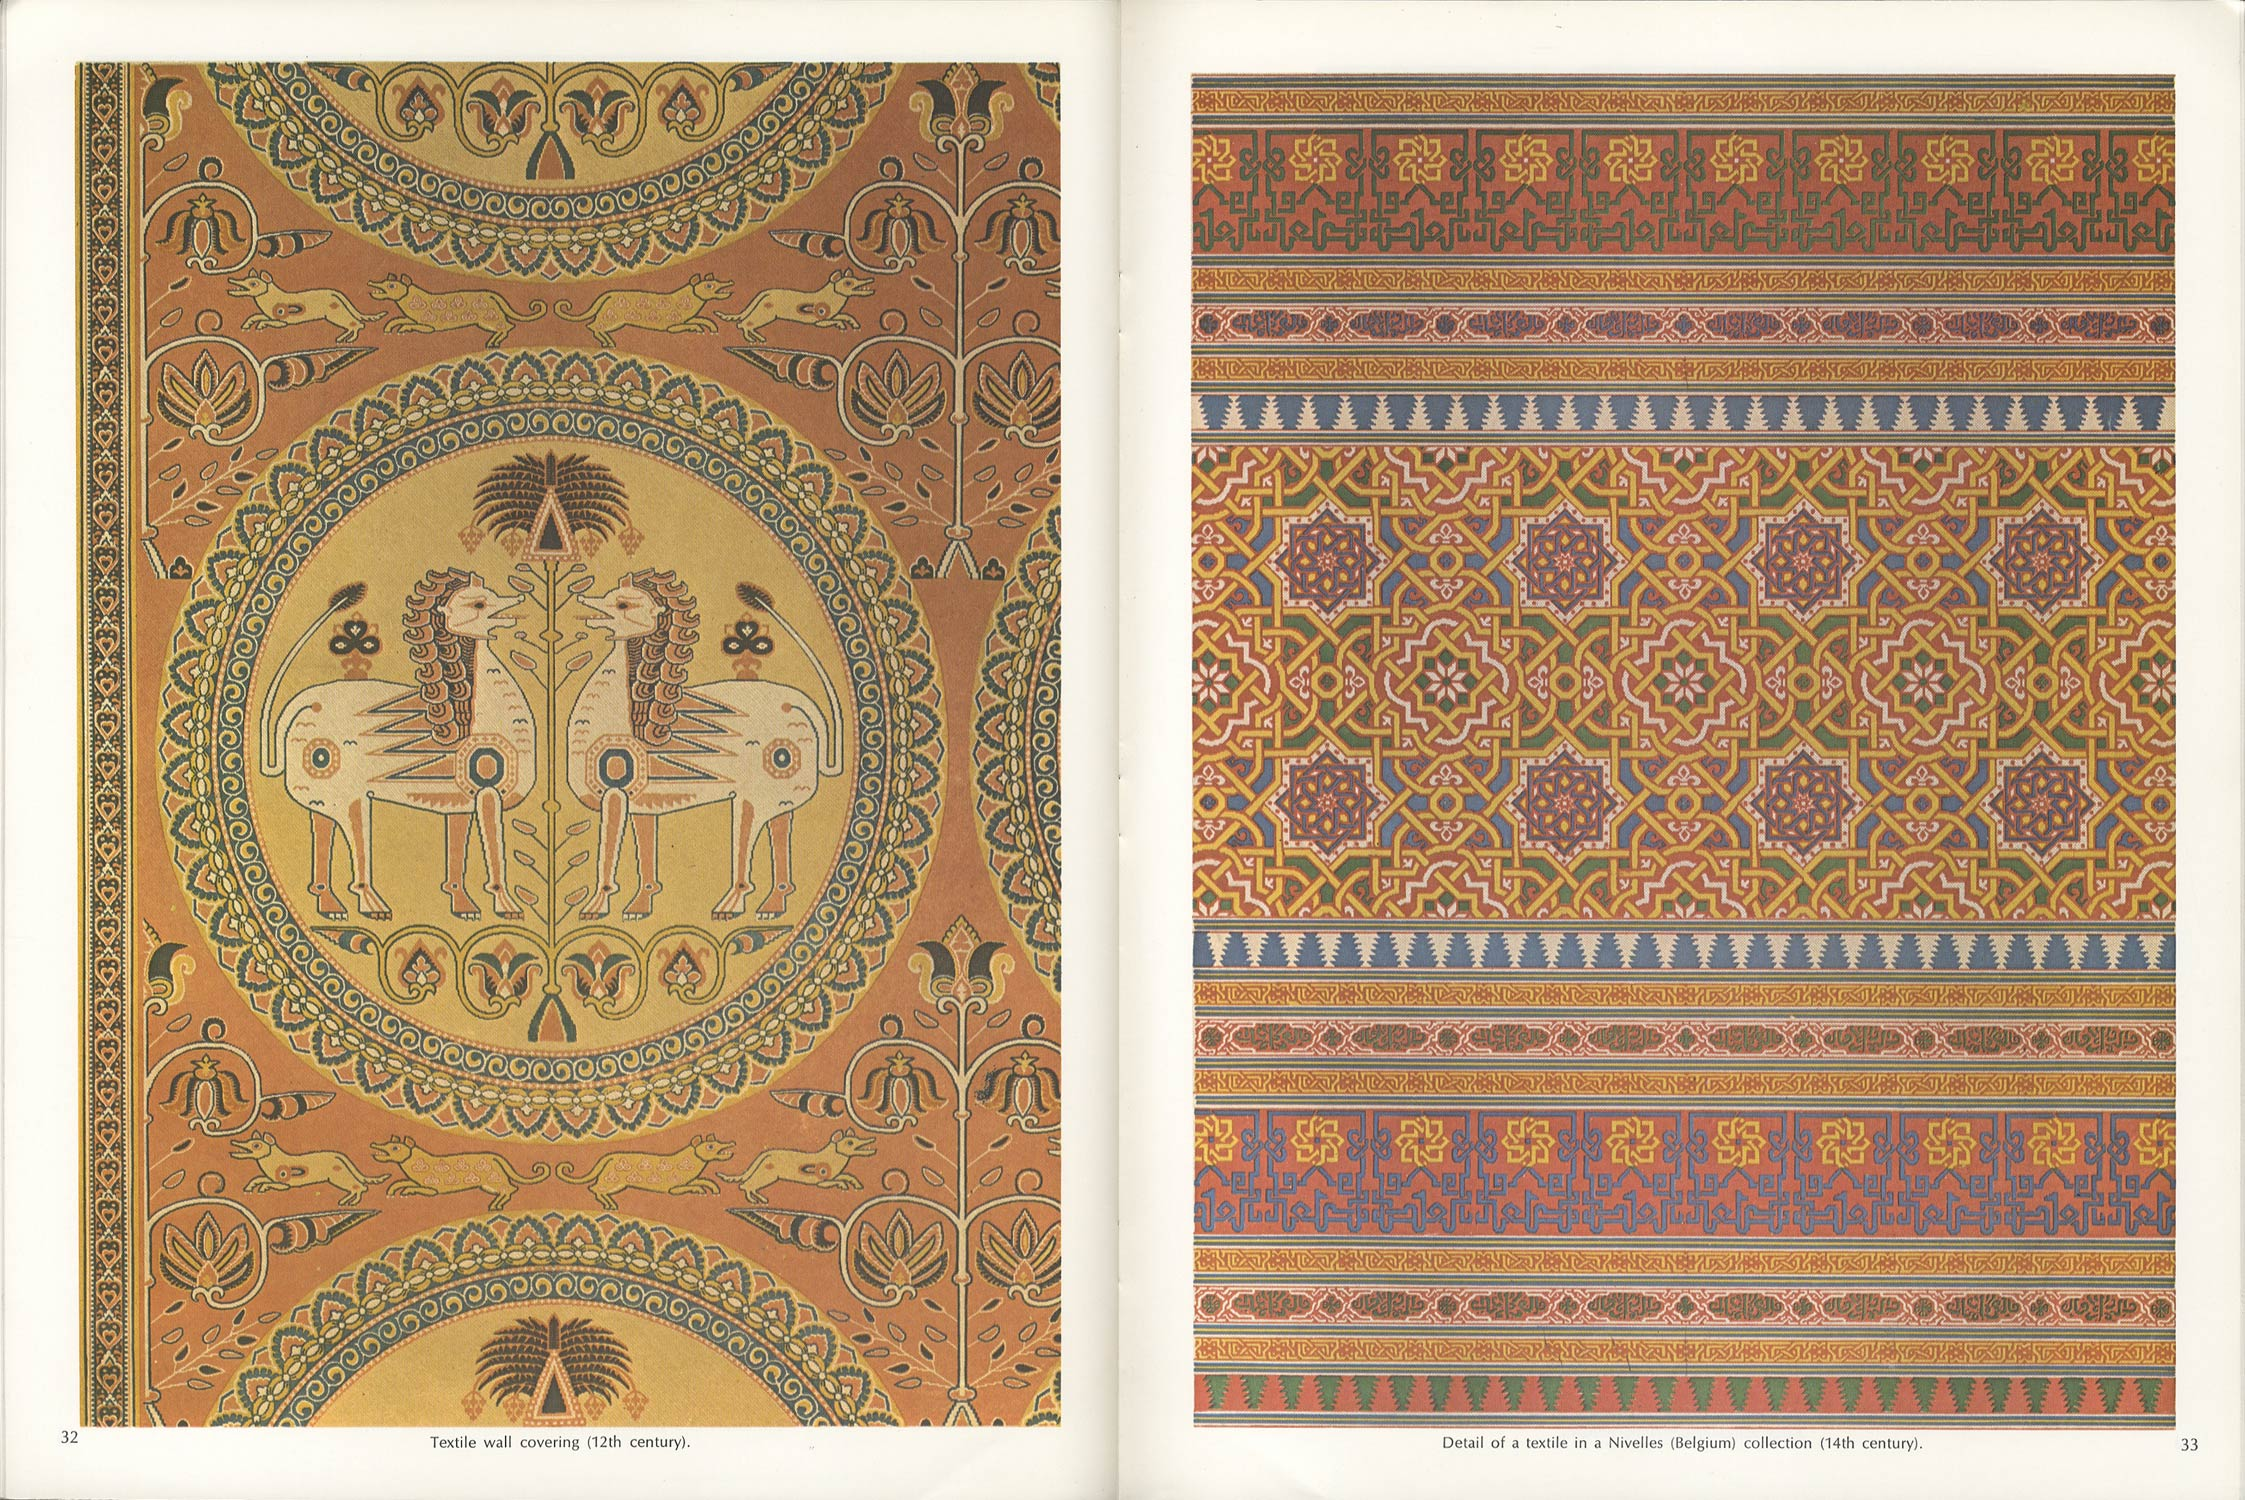 Arabic Art in Color  141 Designs and Motifs on 50 Plates[image4]